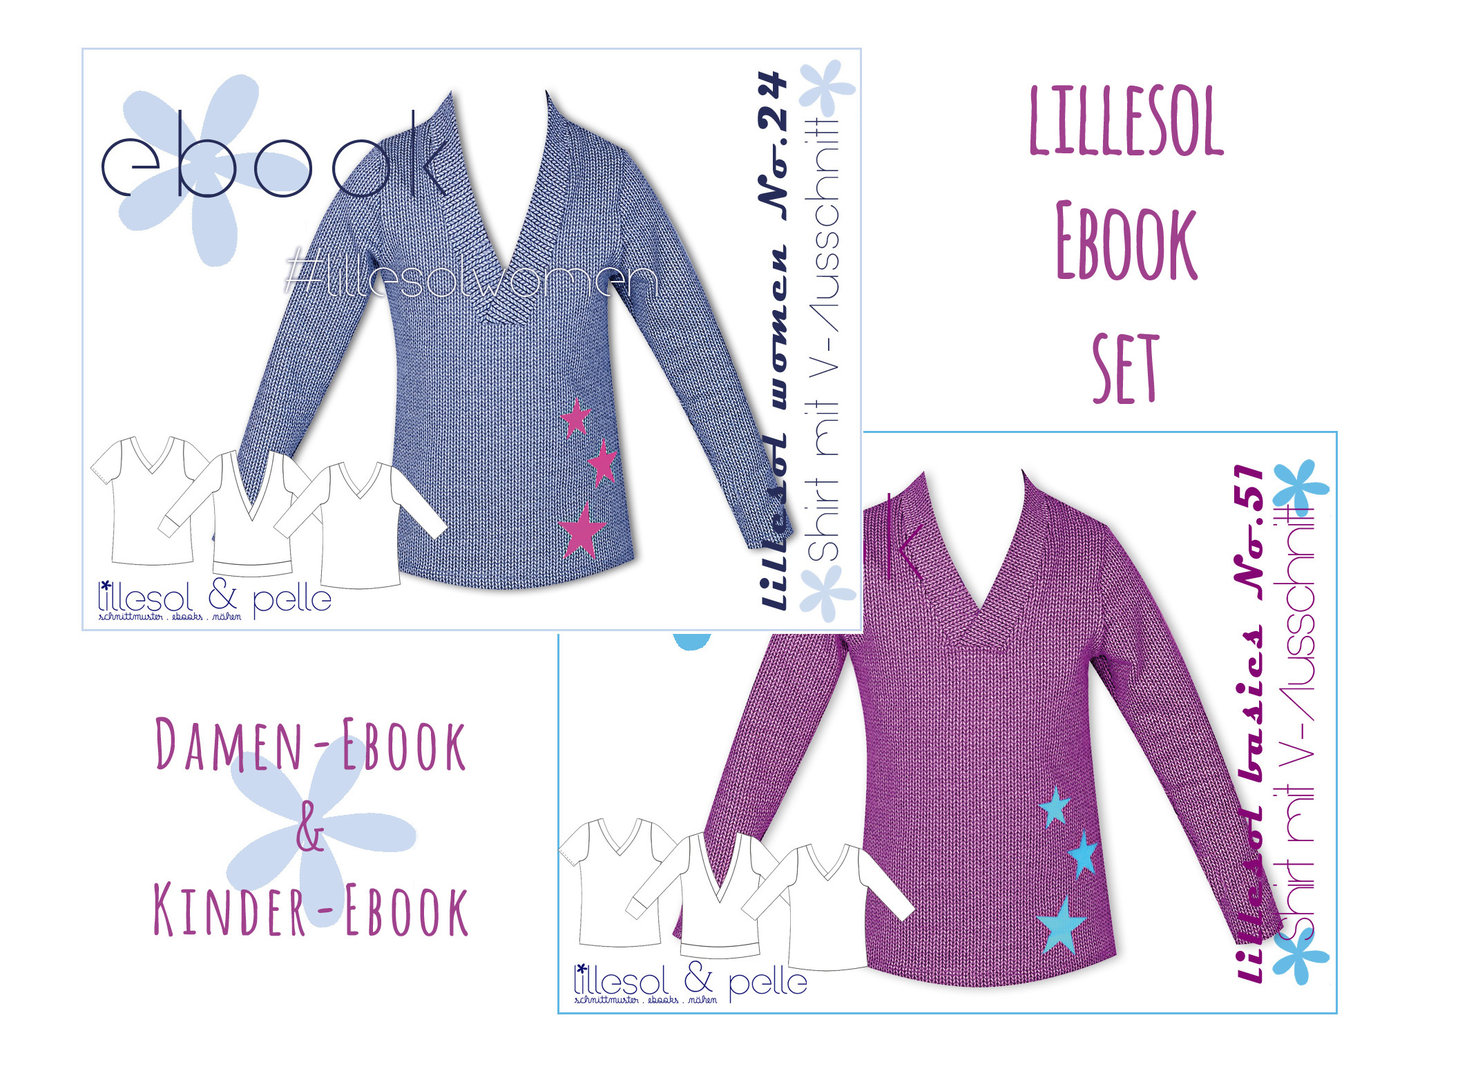 lillesol ebook set basics No.51 und women No.24